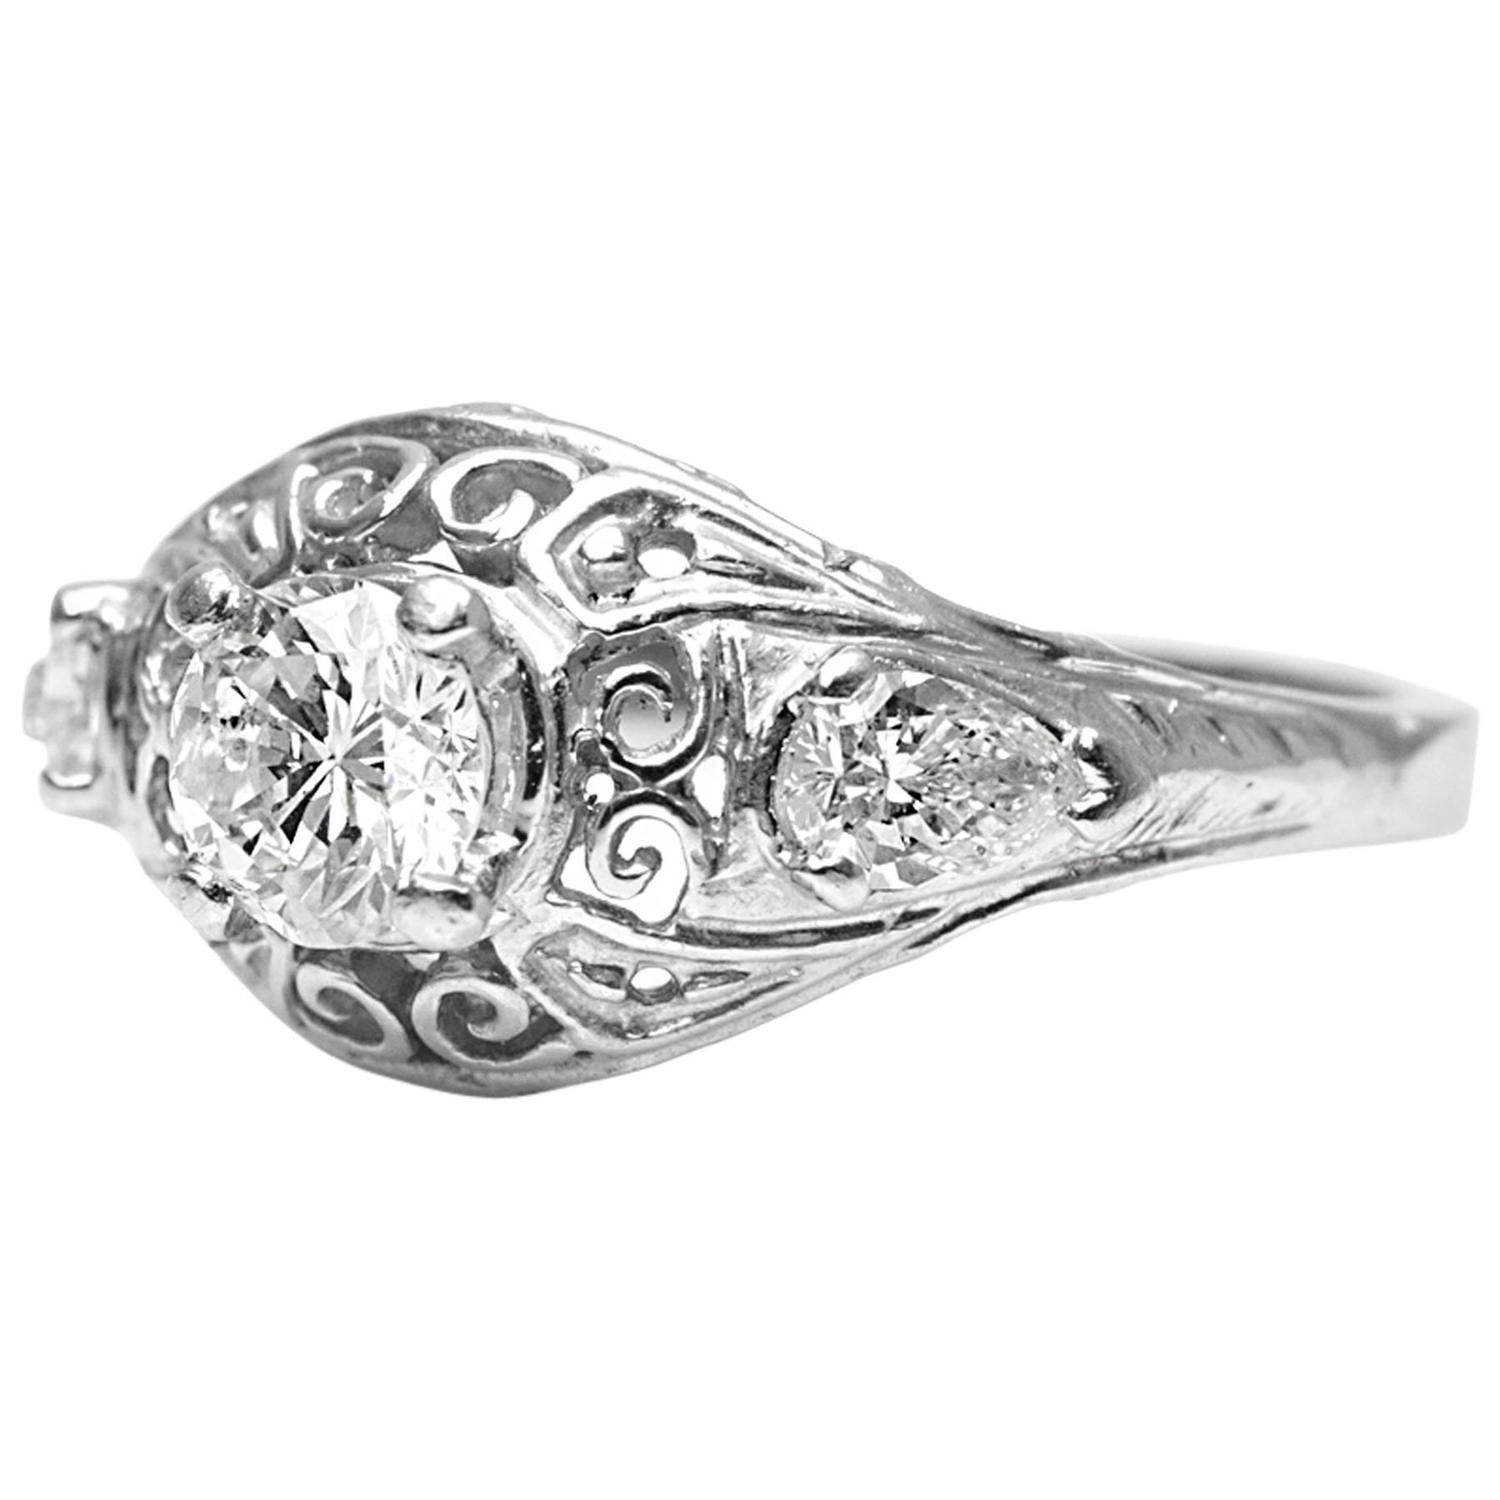 1930s Round and Pear Shaped Diamond Platinum Engagement Ring For Sale at 1stdibs